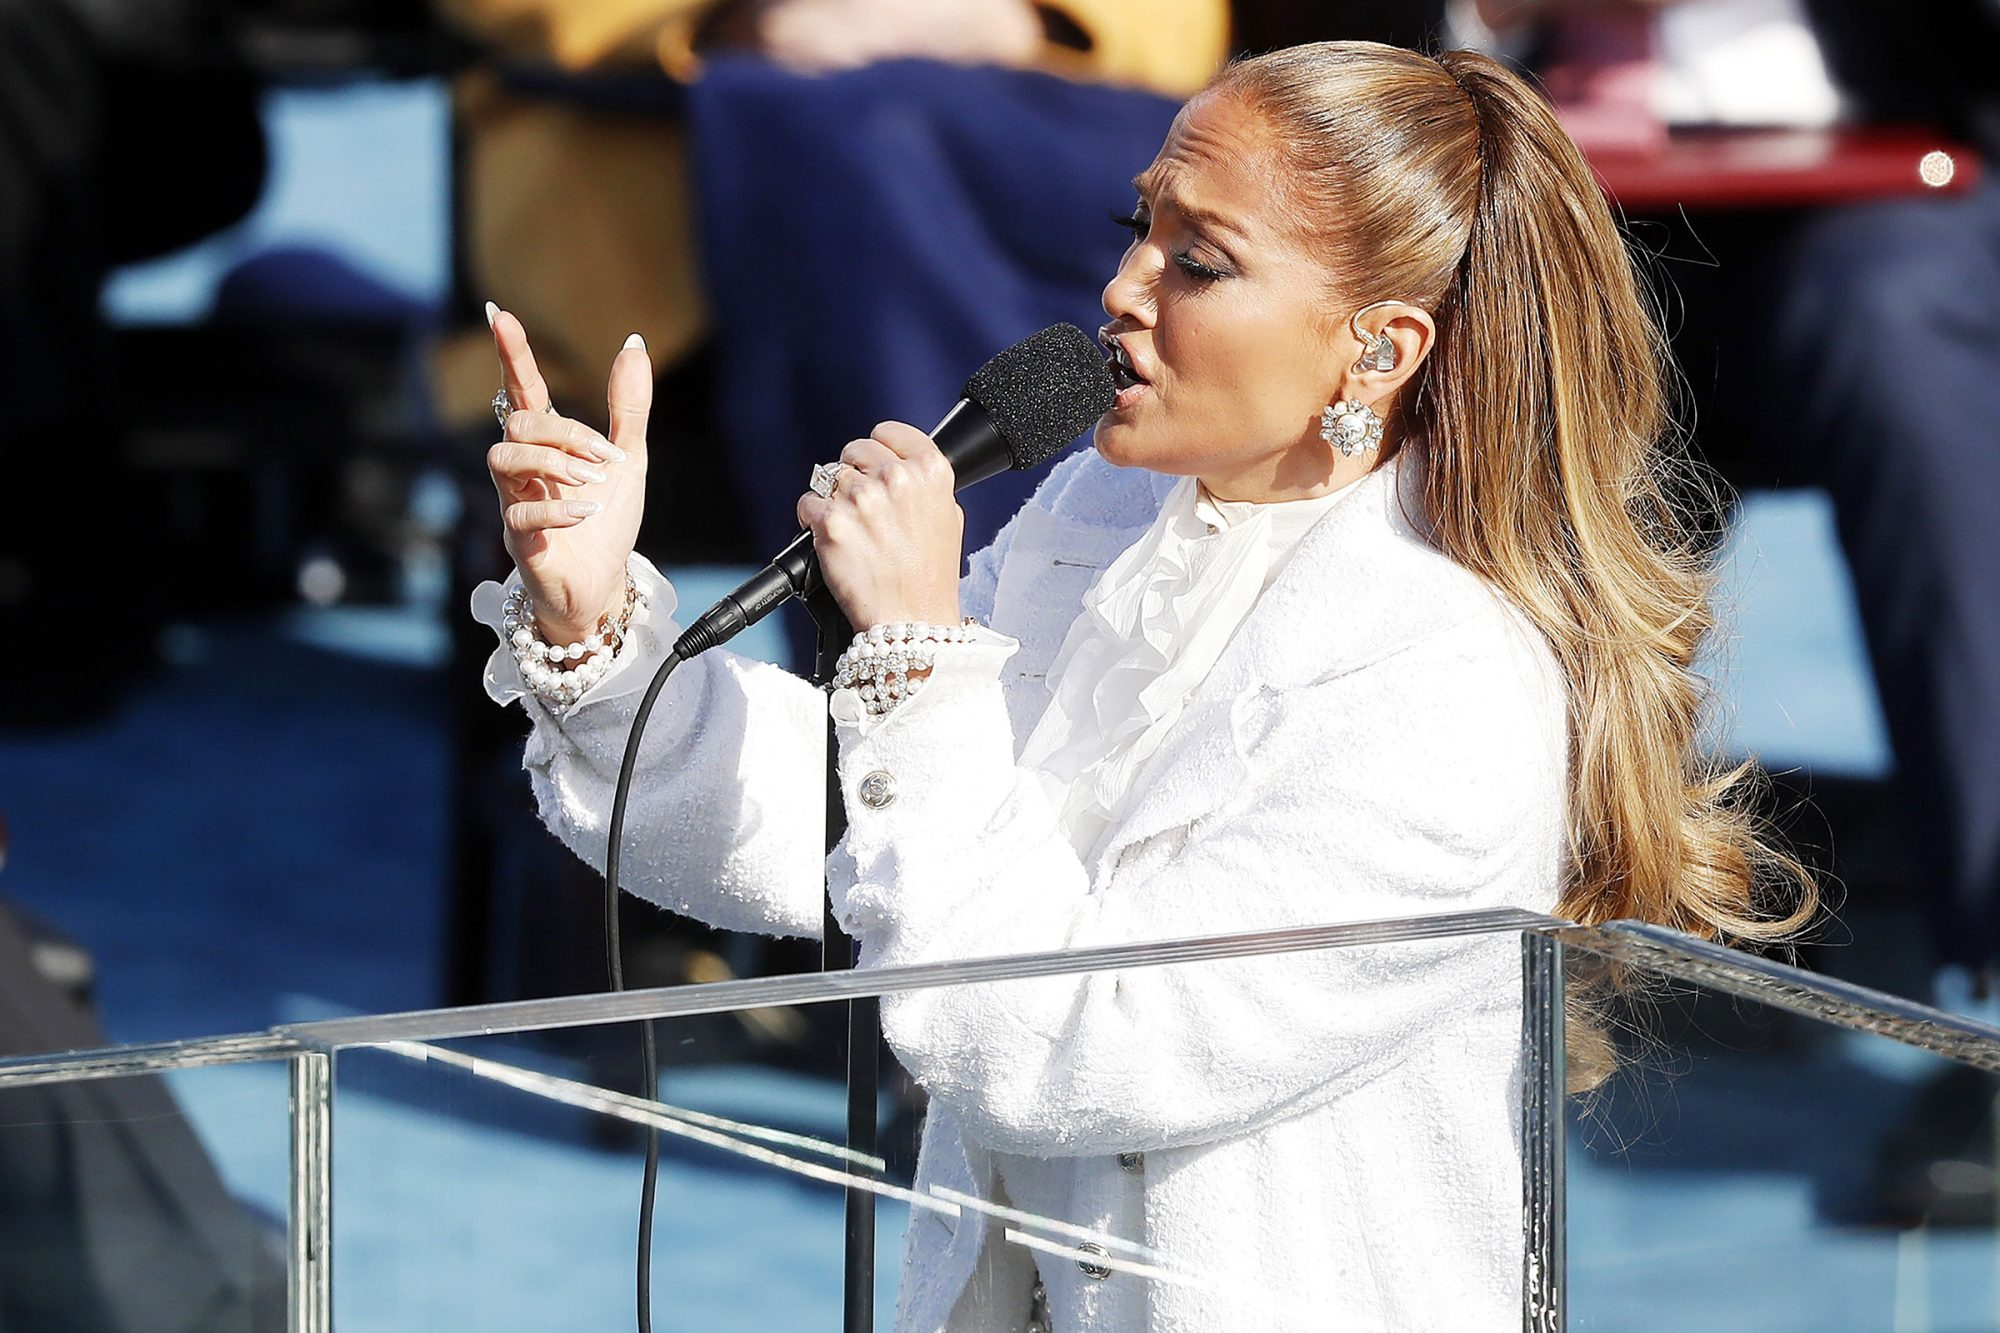 Jennifer Lopez sings 'This Land is Your Land' during the inaugural ceremony for President-elect Joe Biden and Vice President-elect Kamala Harris on the West Front of the U.S. Capitol in Washington